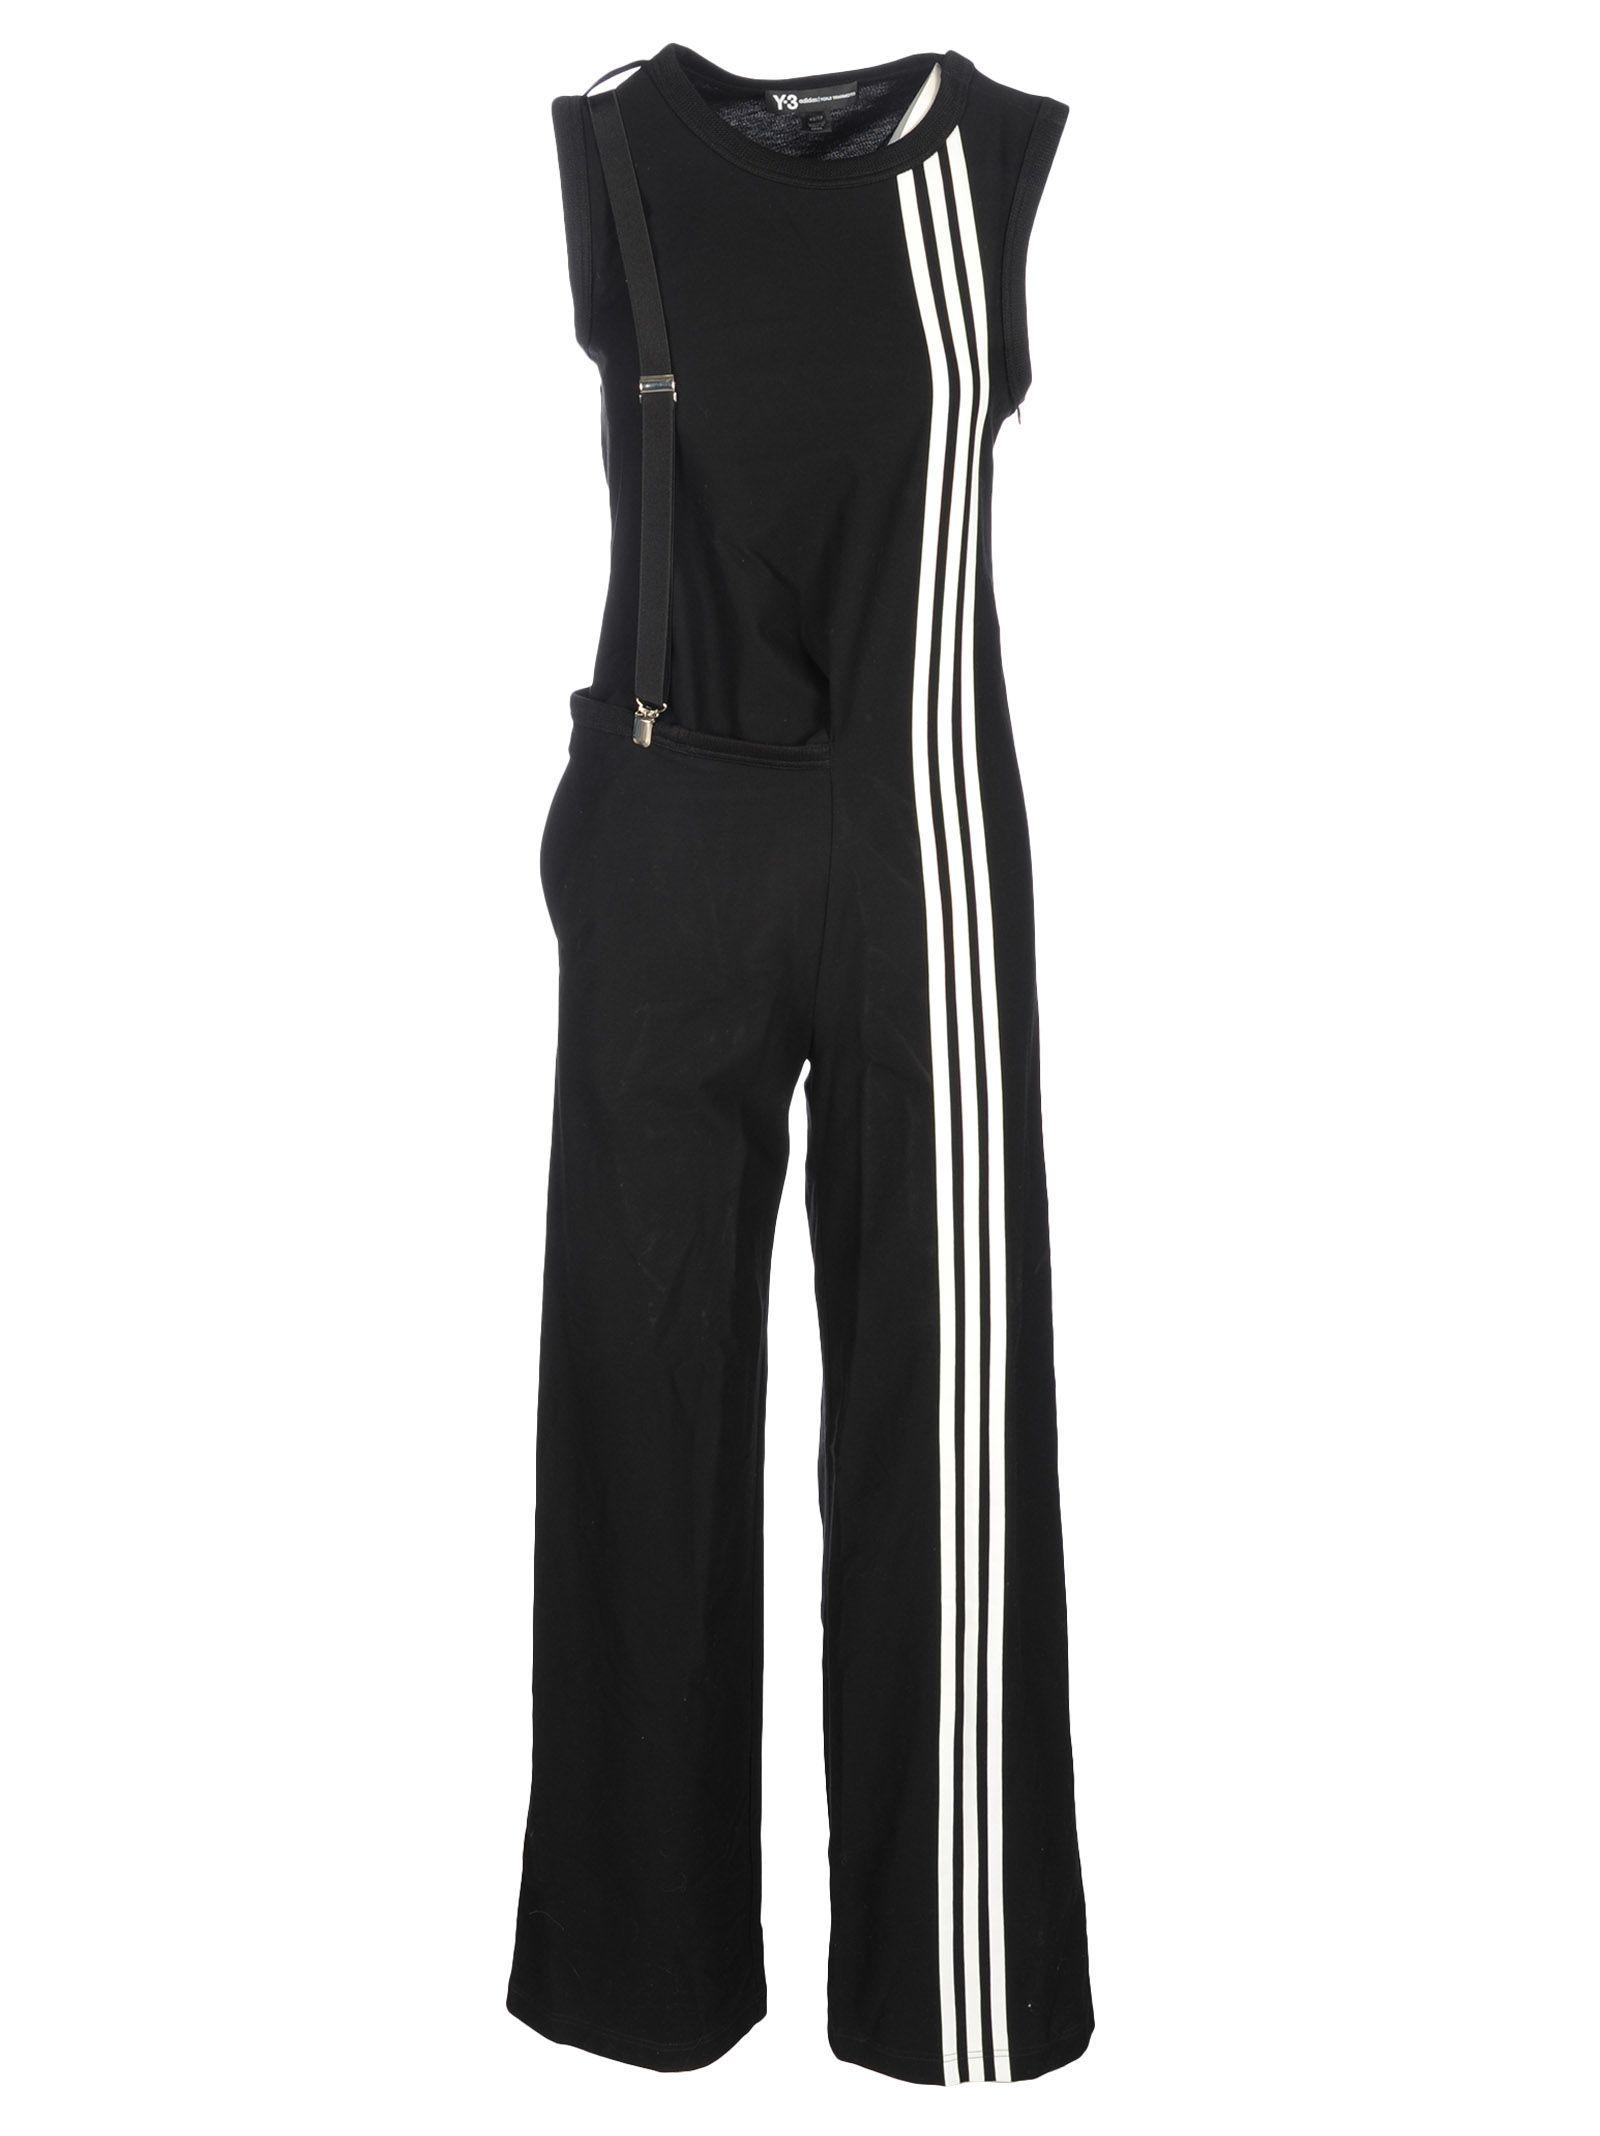 4c44c304e0e Y-3 Adidas Y3 3 Stripes Jumpsuit In Black